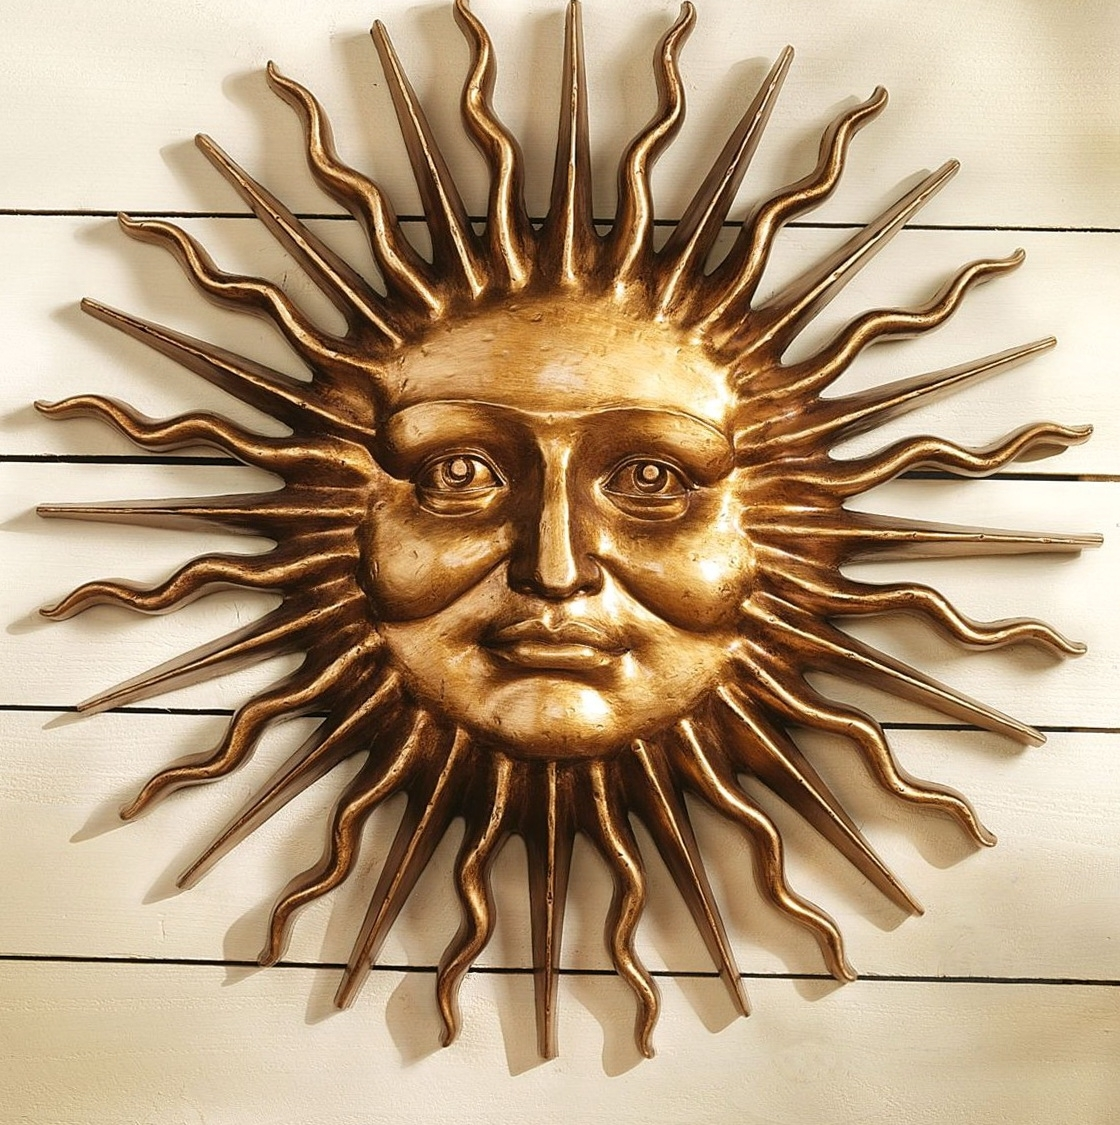 Wall Art Ideas Design : Greek Mythology Metal Sun Wall Art Regarding Current Large Metal Sun Wall Art (View 14 of 15)